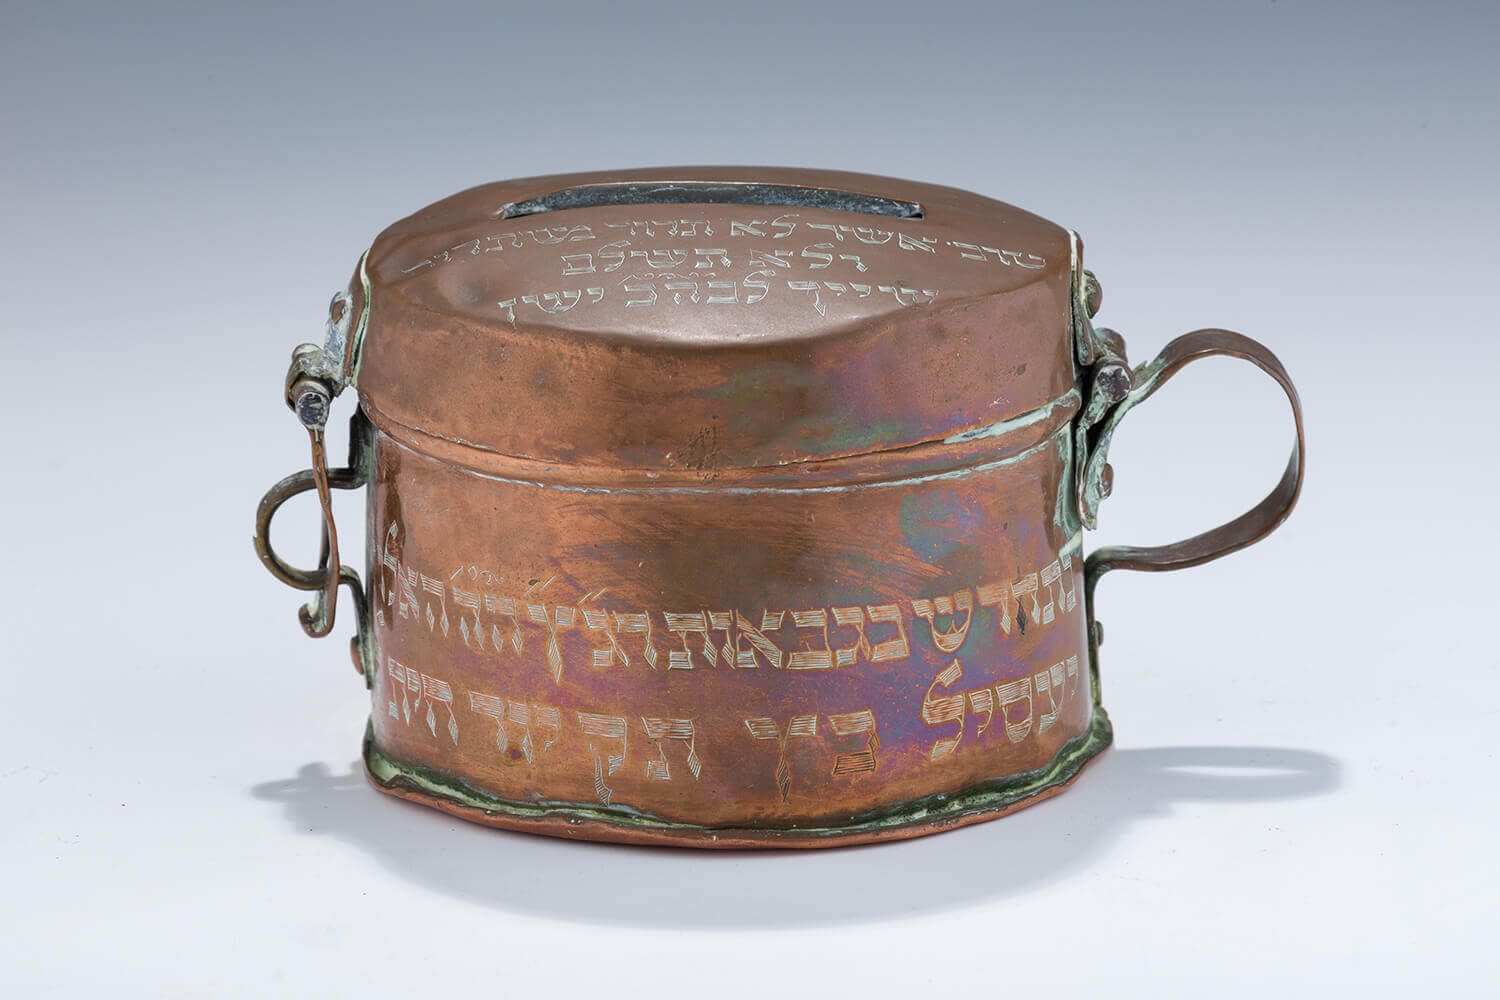 070. A RARE AND IMPORTANT COPPER CHARITY CONTAINER